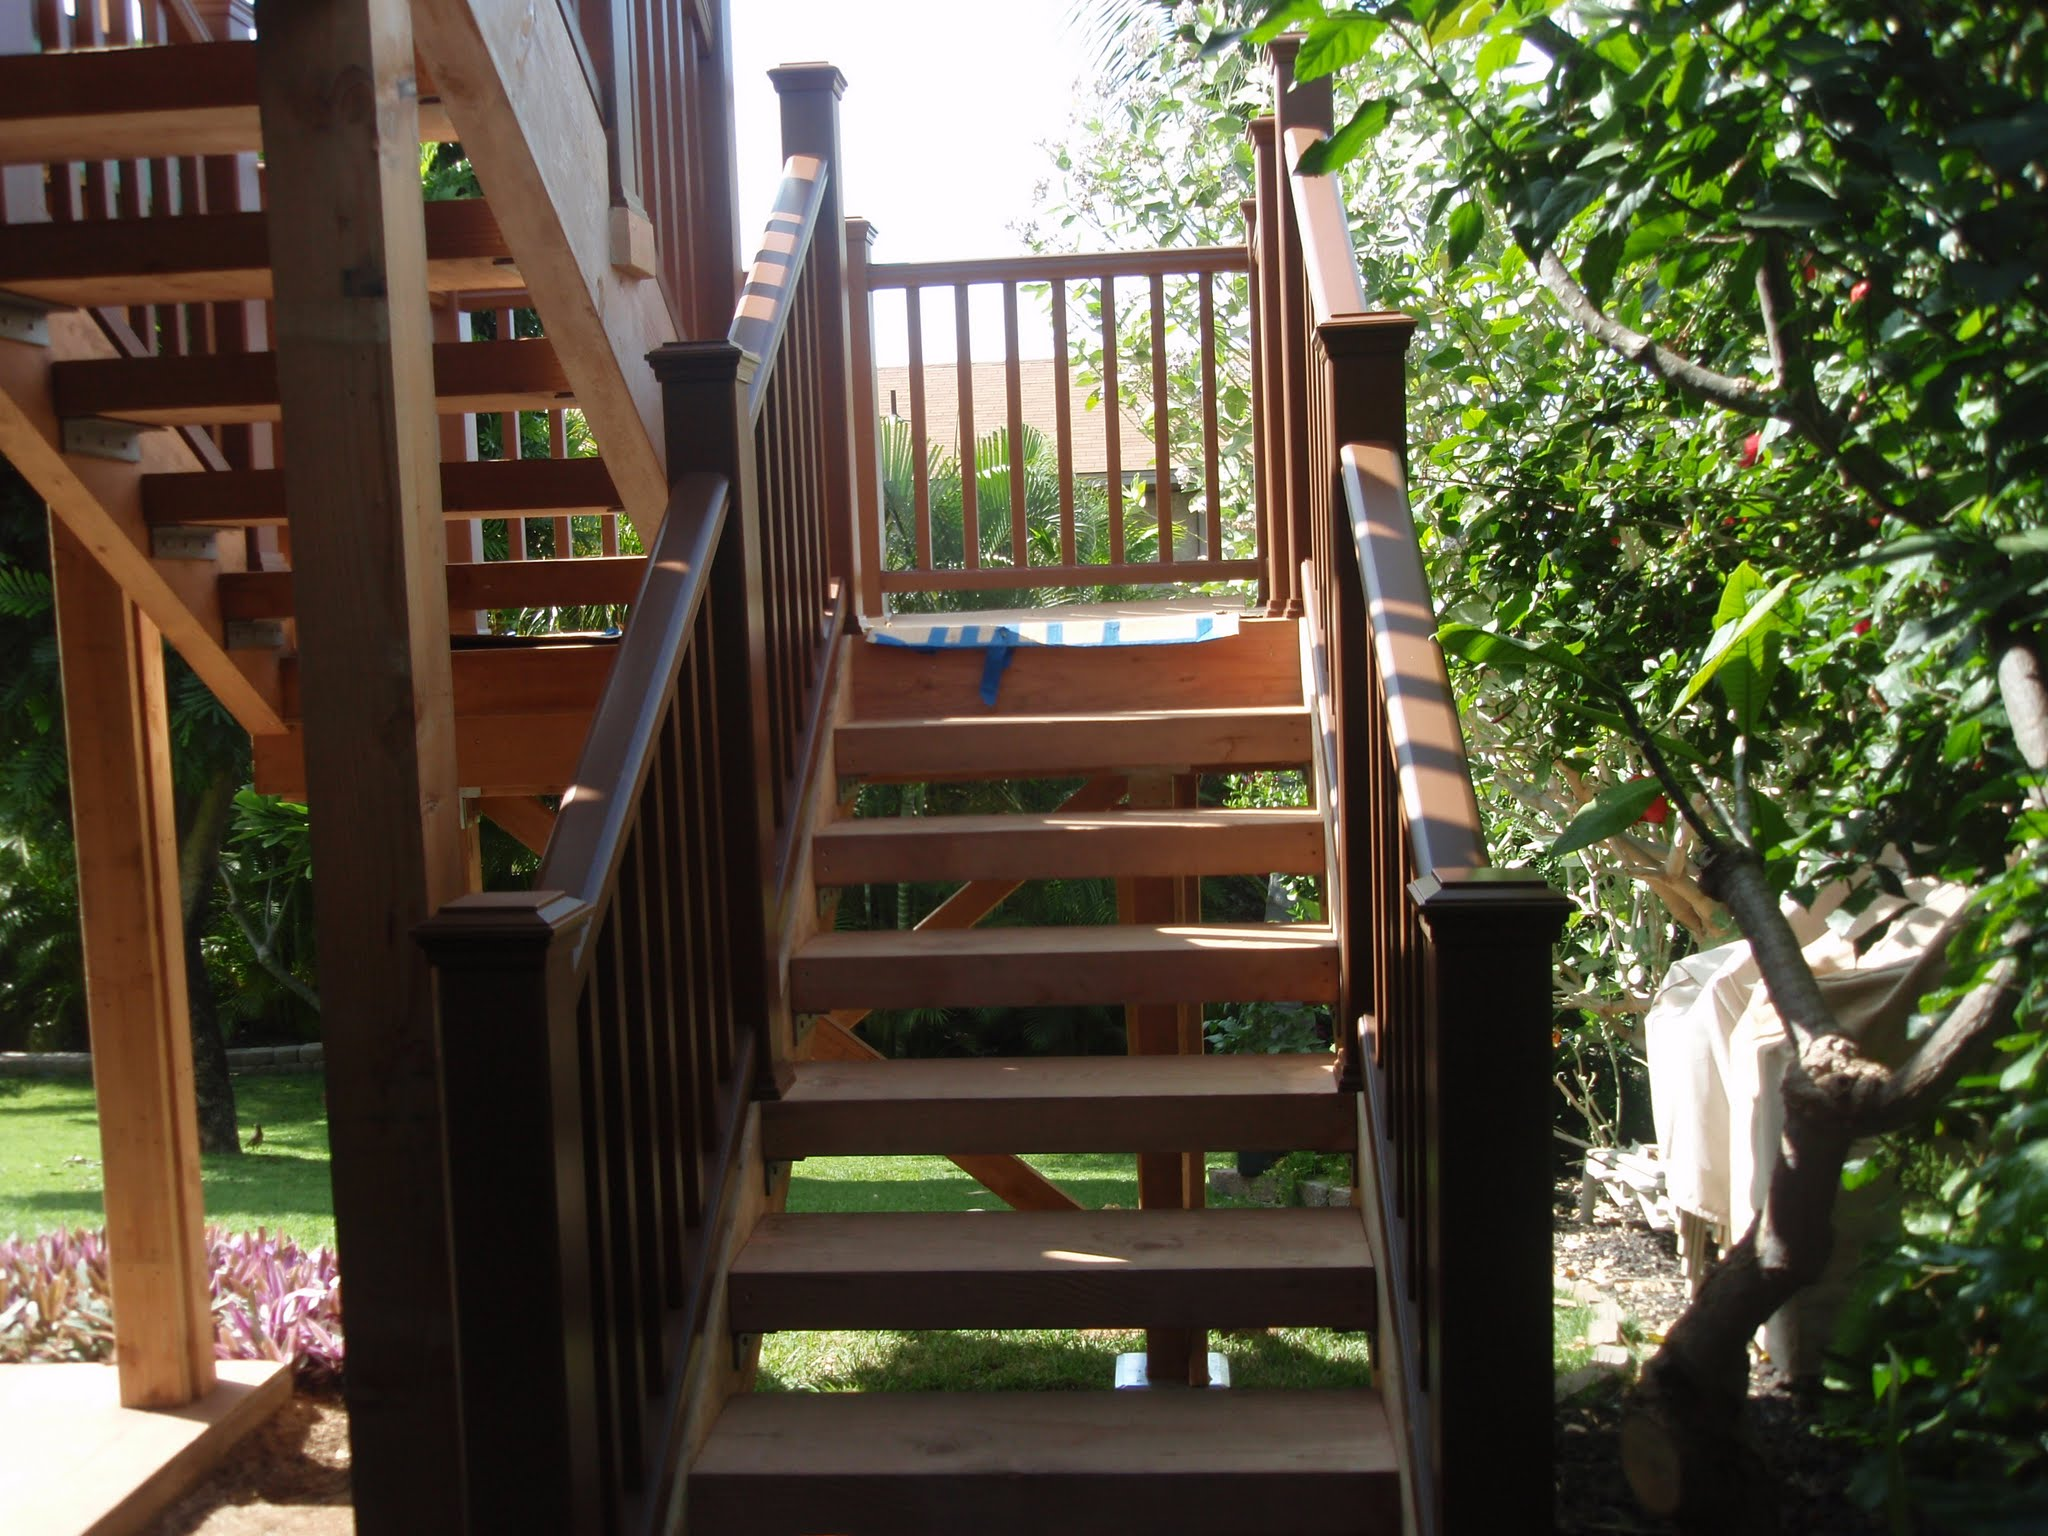 Trex railings are in on the stairway